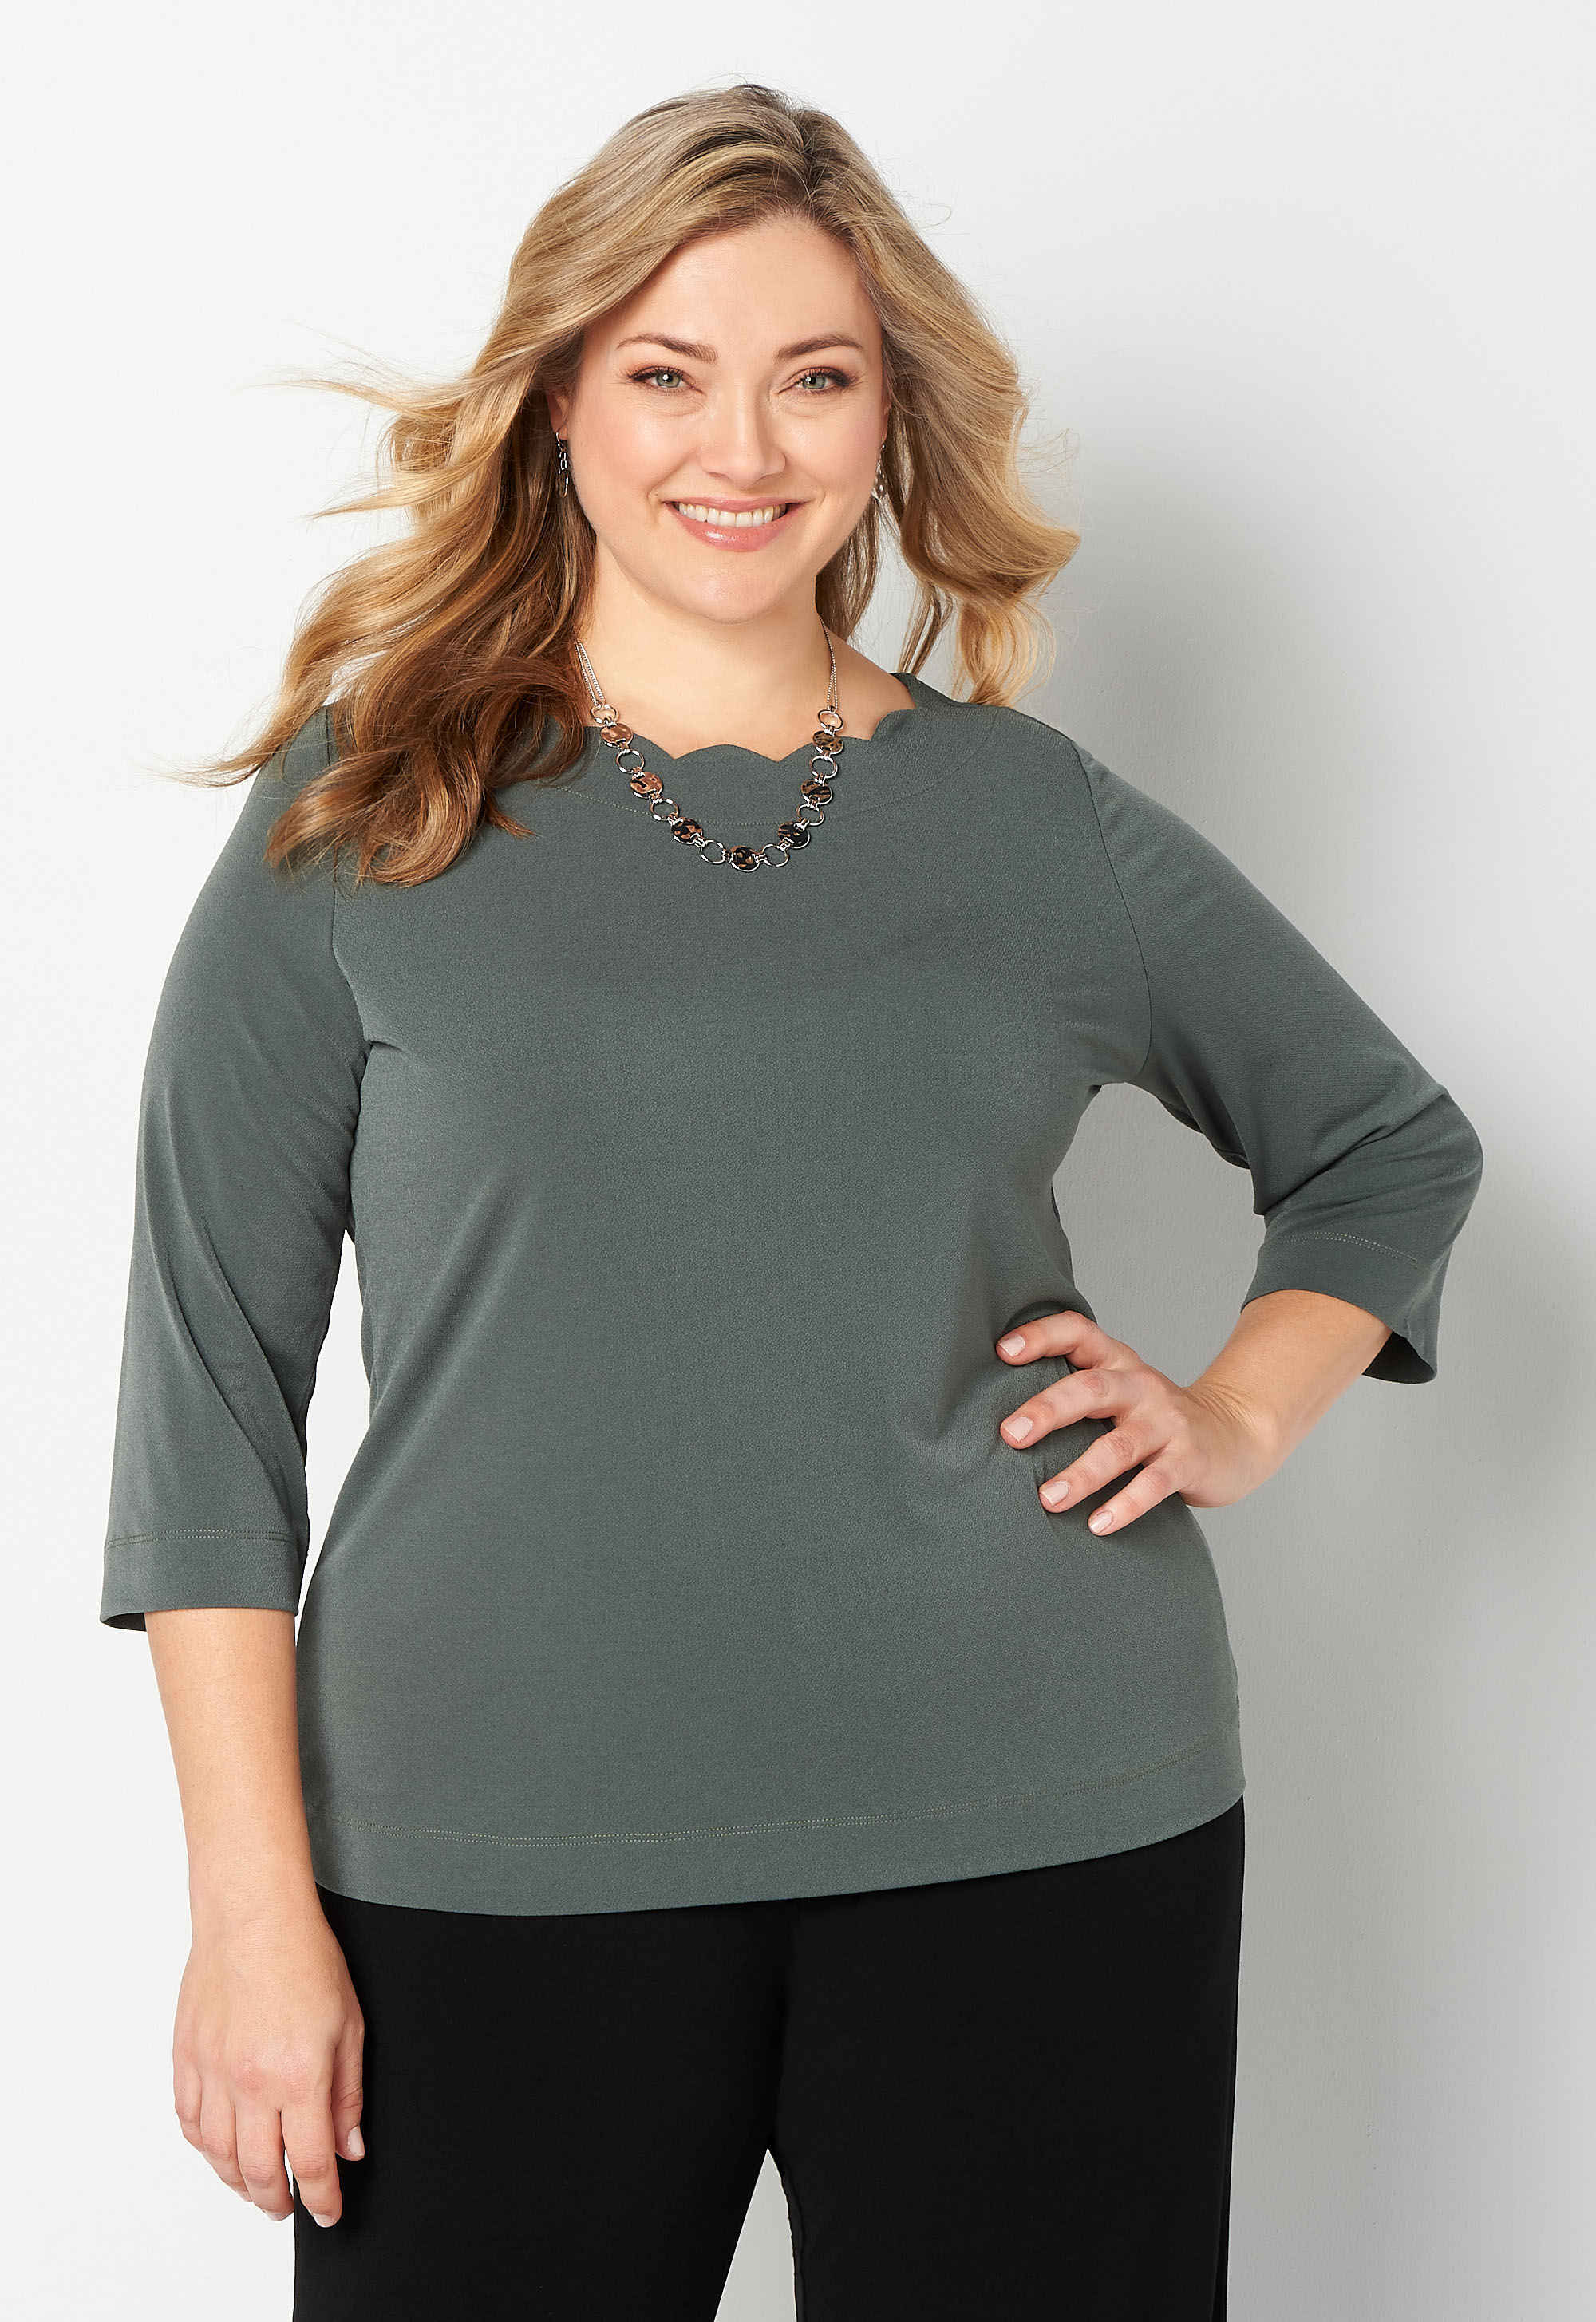 Easy Wear Scallop Knit Crepe Boatneck Plus Size Top